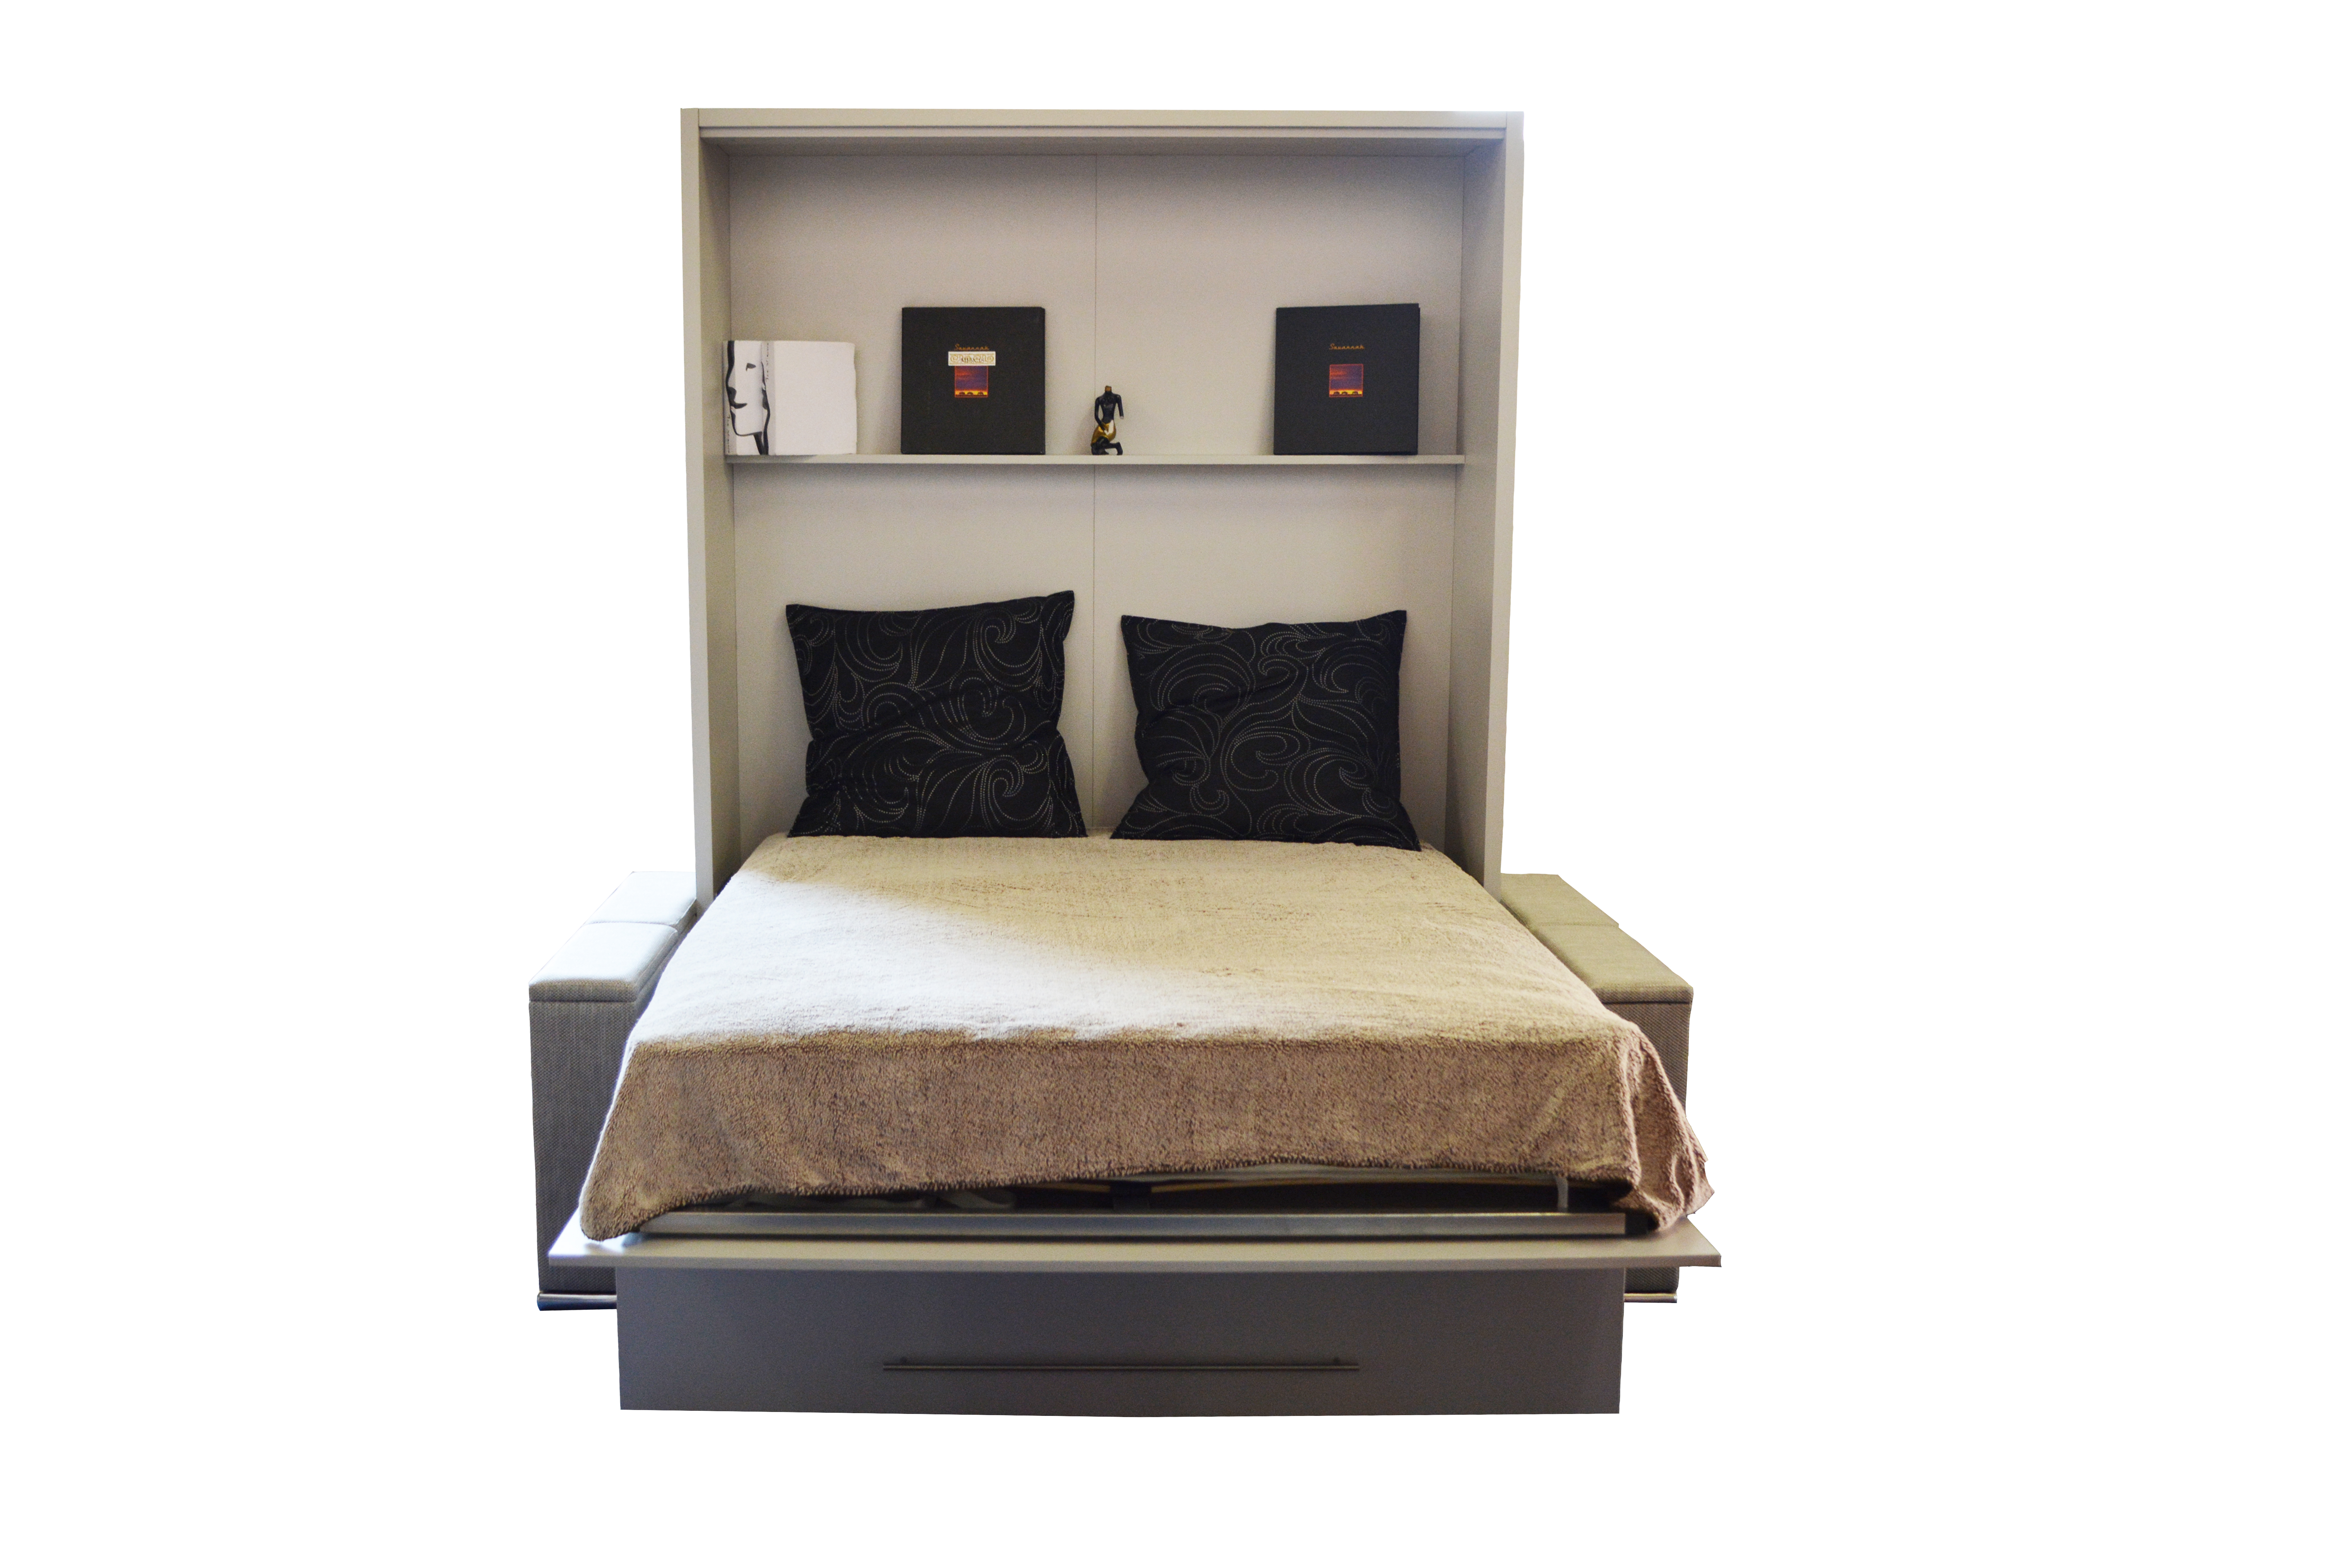 ol ron meubles lit vertical autoporteur mod le lyon ol ron meubles. Black Bedroom Furniture Sets. Home Design Ideas